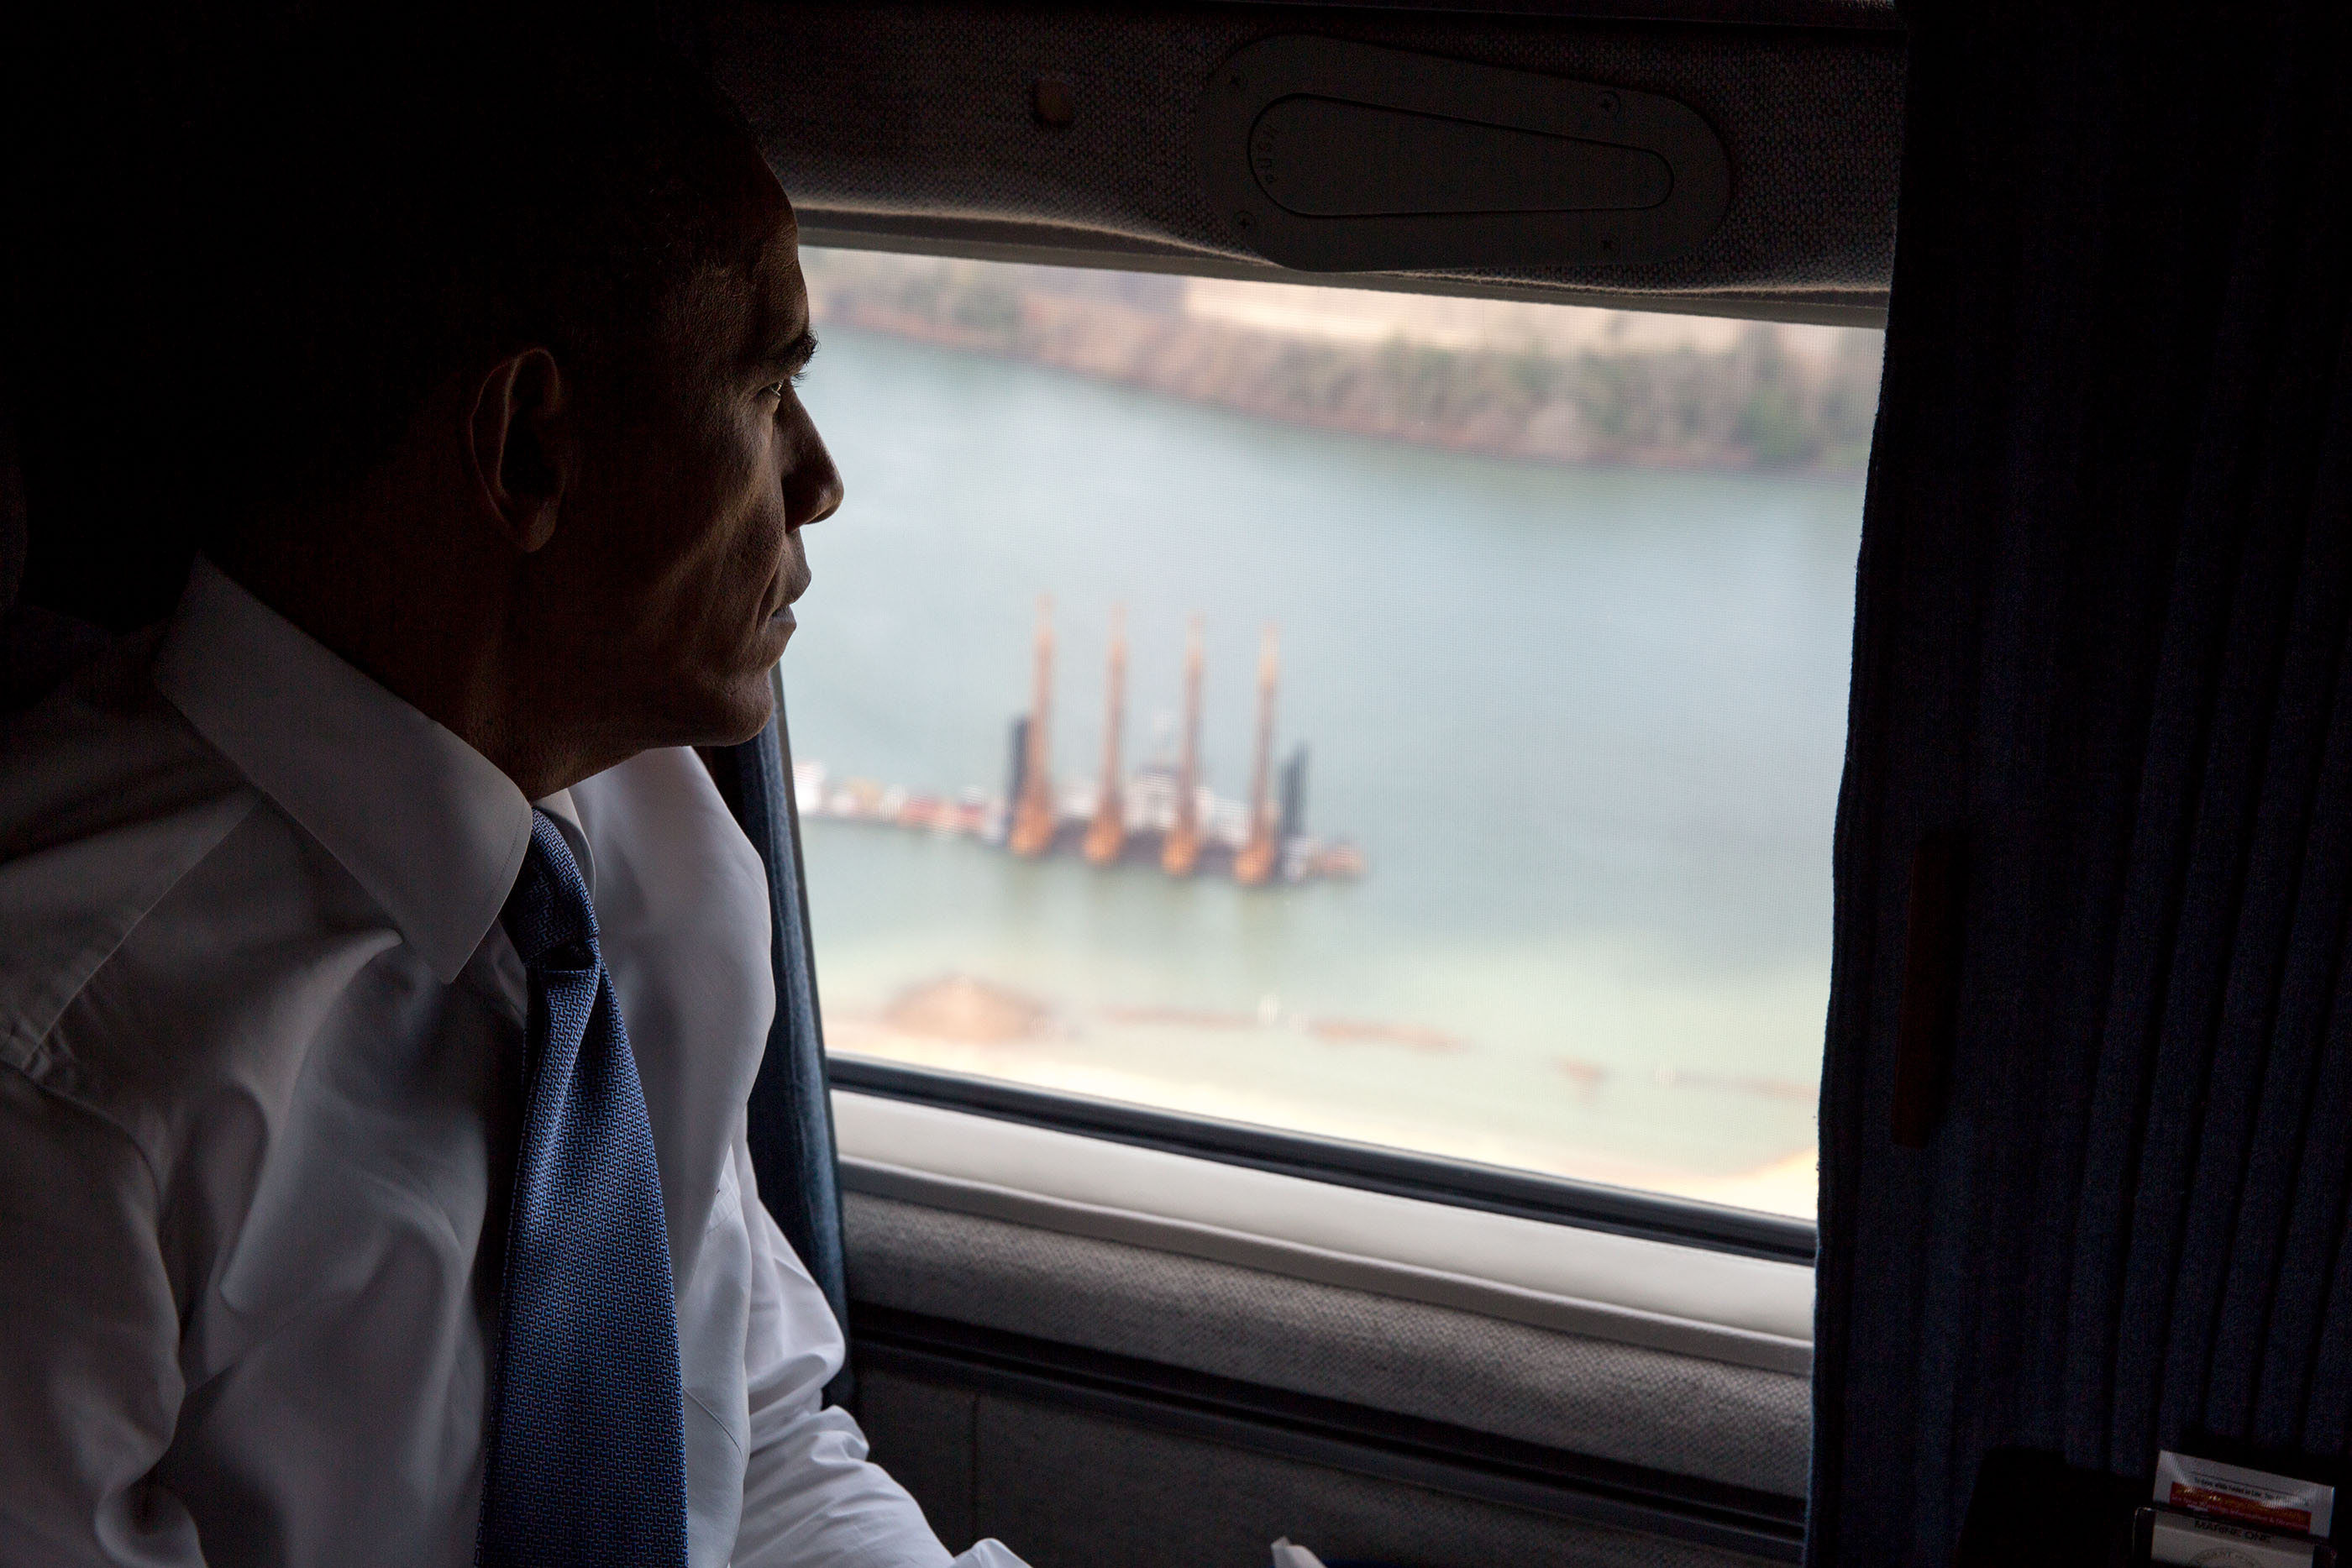 President Obama views the Panama Canal from Marine One. (Official White House Photo by Pete Souza)